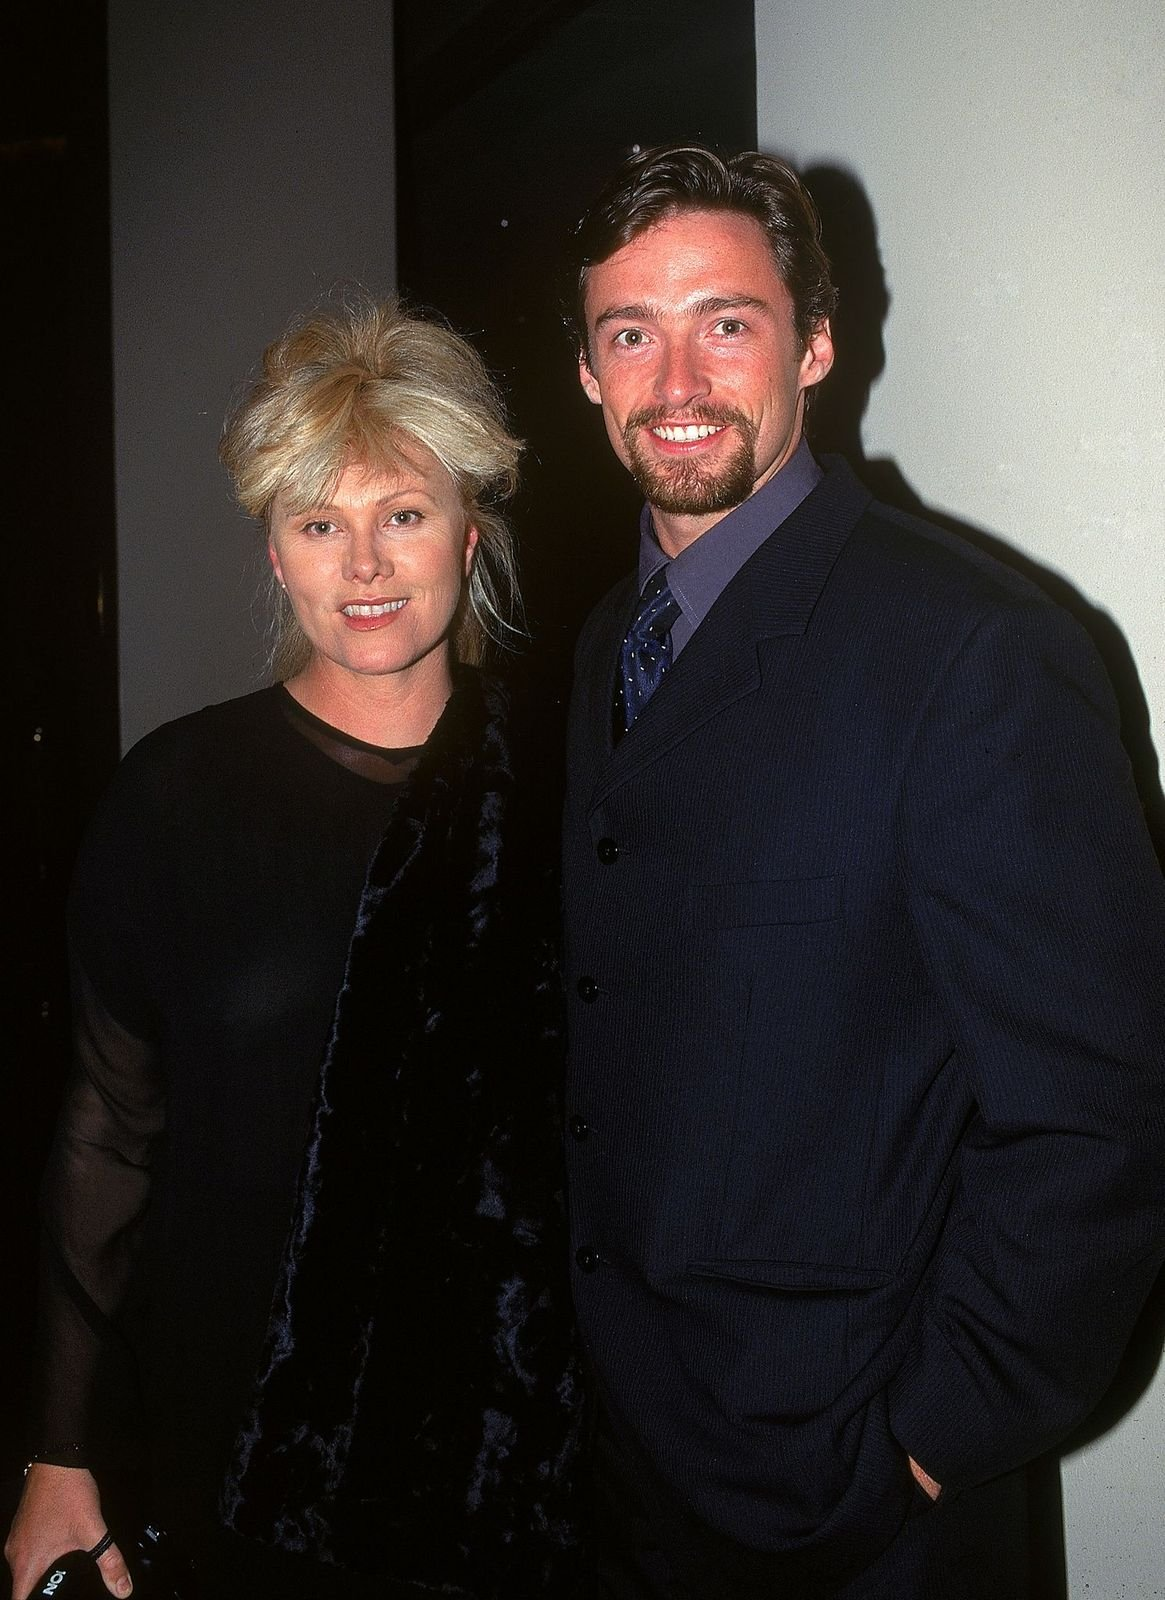 Deborra-Lee Furness and Hugh Jackmanatthe Variety Club Heart Awards on July 18, 1997, in Sydney, Australia   Photo:Patrick Riviere/Getty Images